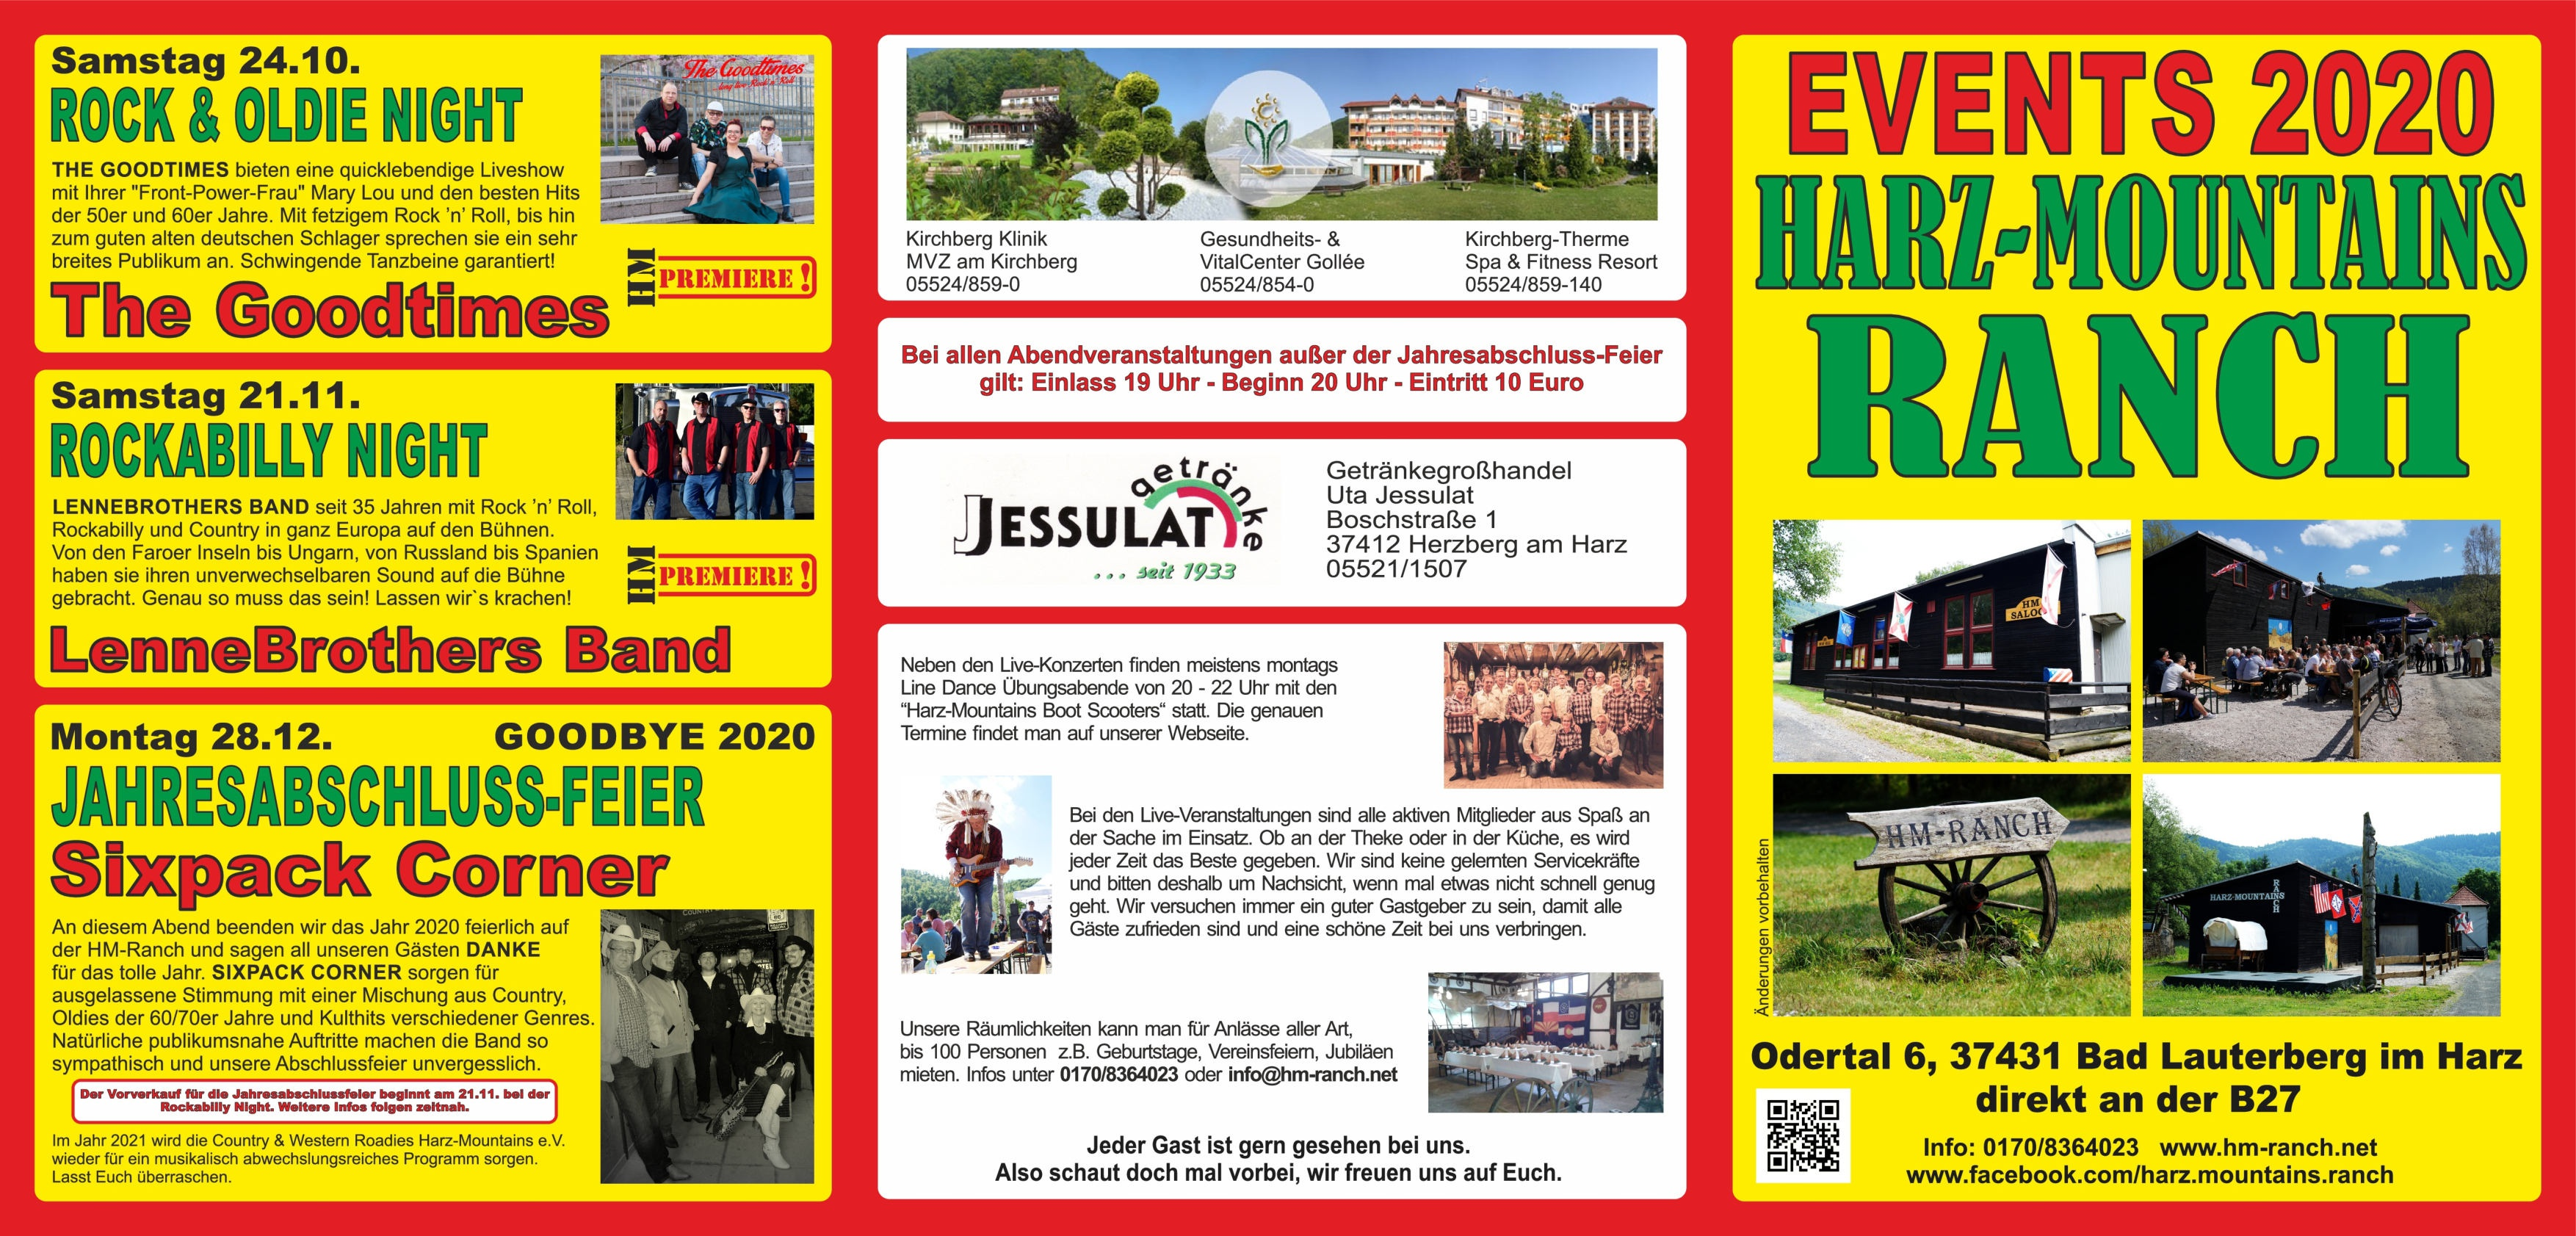 Events 2020 Country & Western Roadies Harz Mountains e.V 37431 Bad Lauterberg im Harz 001